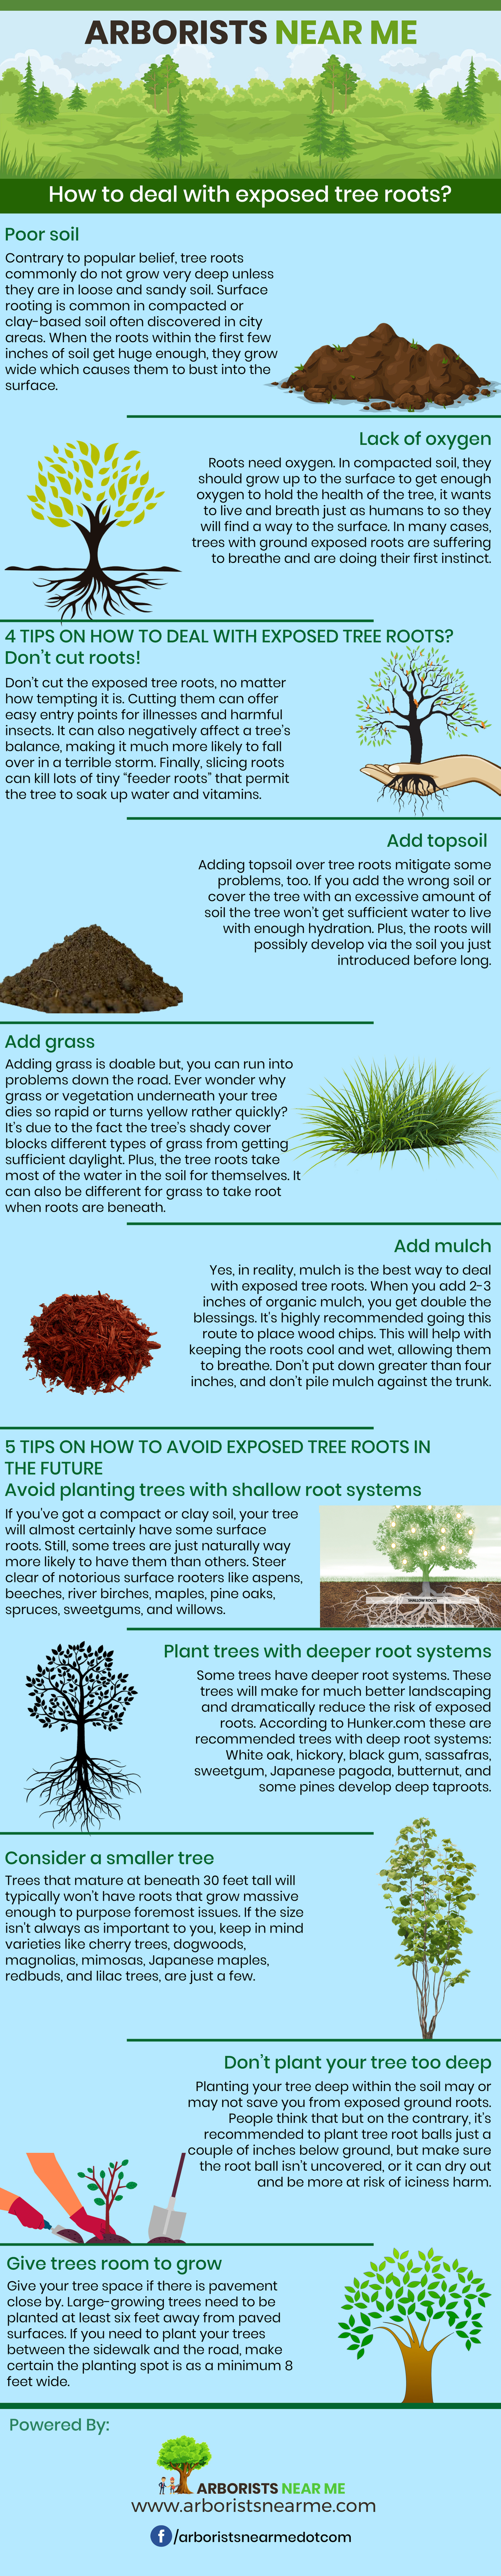 How To Deal With Exposed Tree Roots 4 Tips On What To Do And 5 Ways To Avoid This